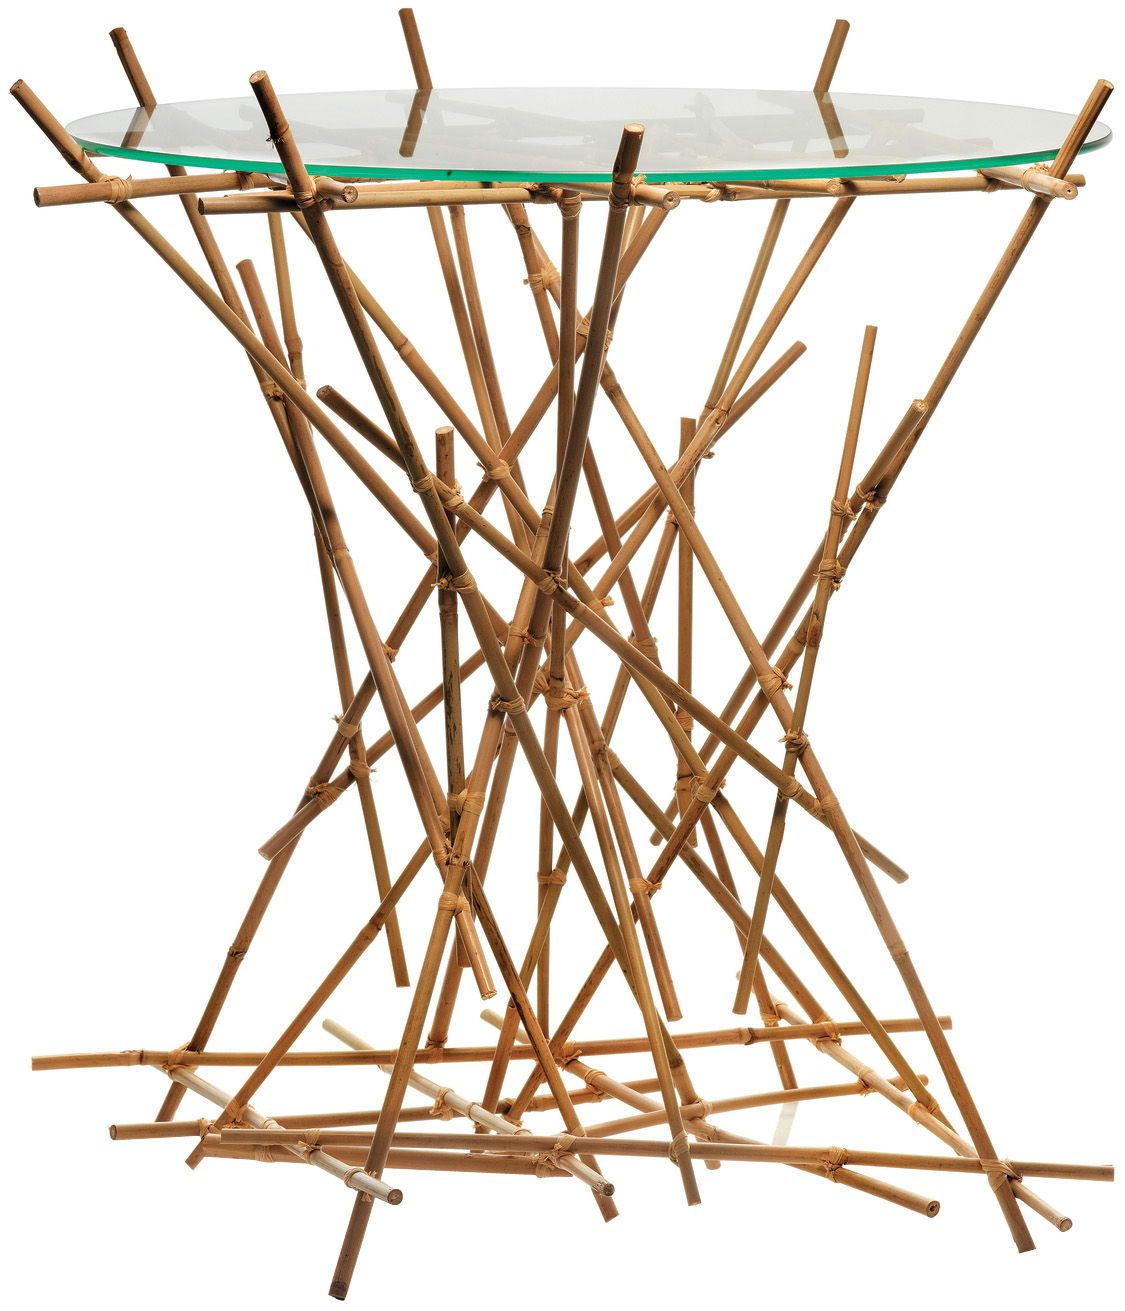 Bamboo Table With Design: Blow Up Bamboo Coffee Table Bamboo By Alessi